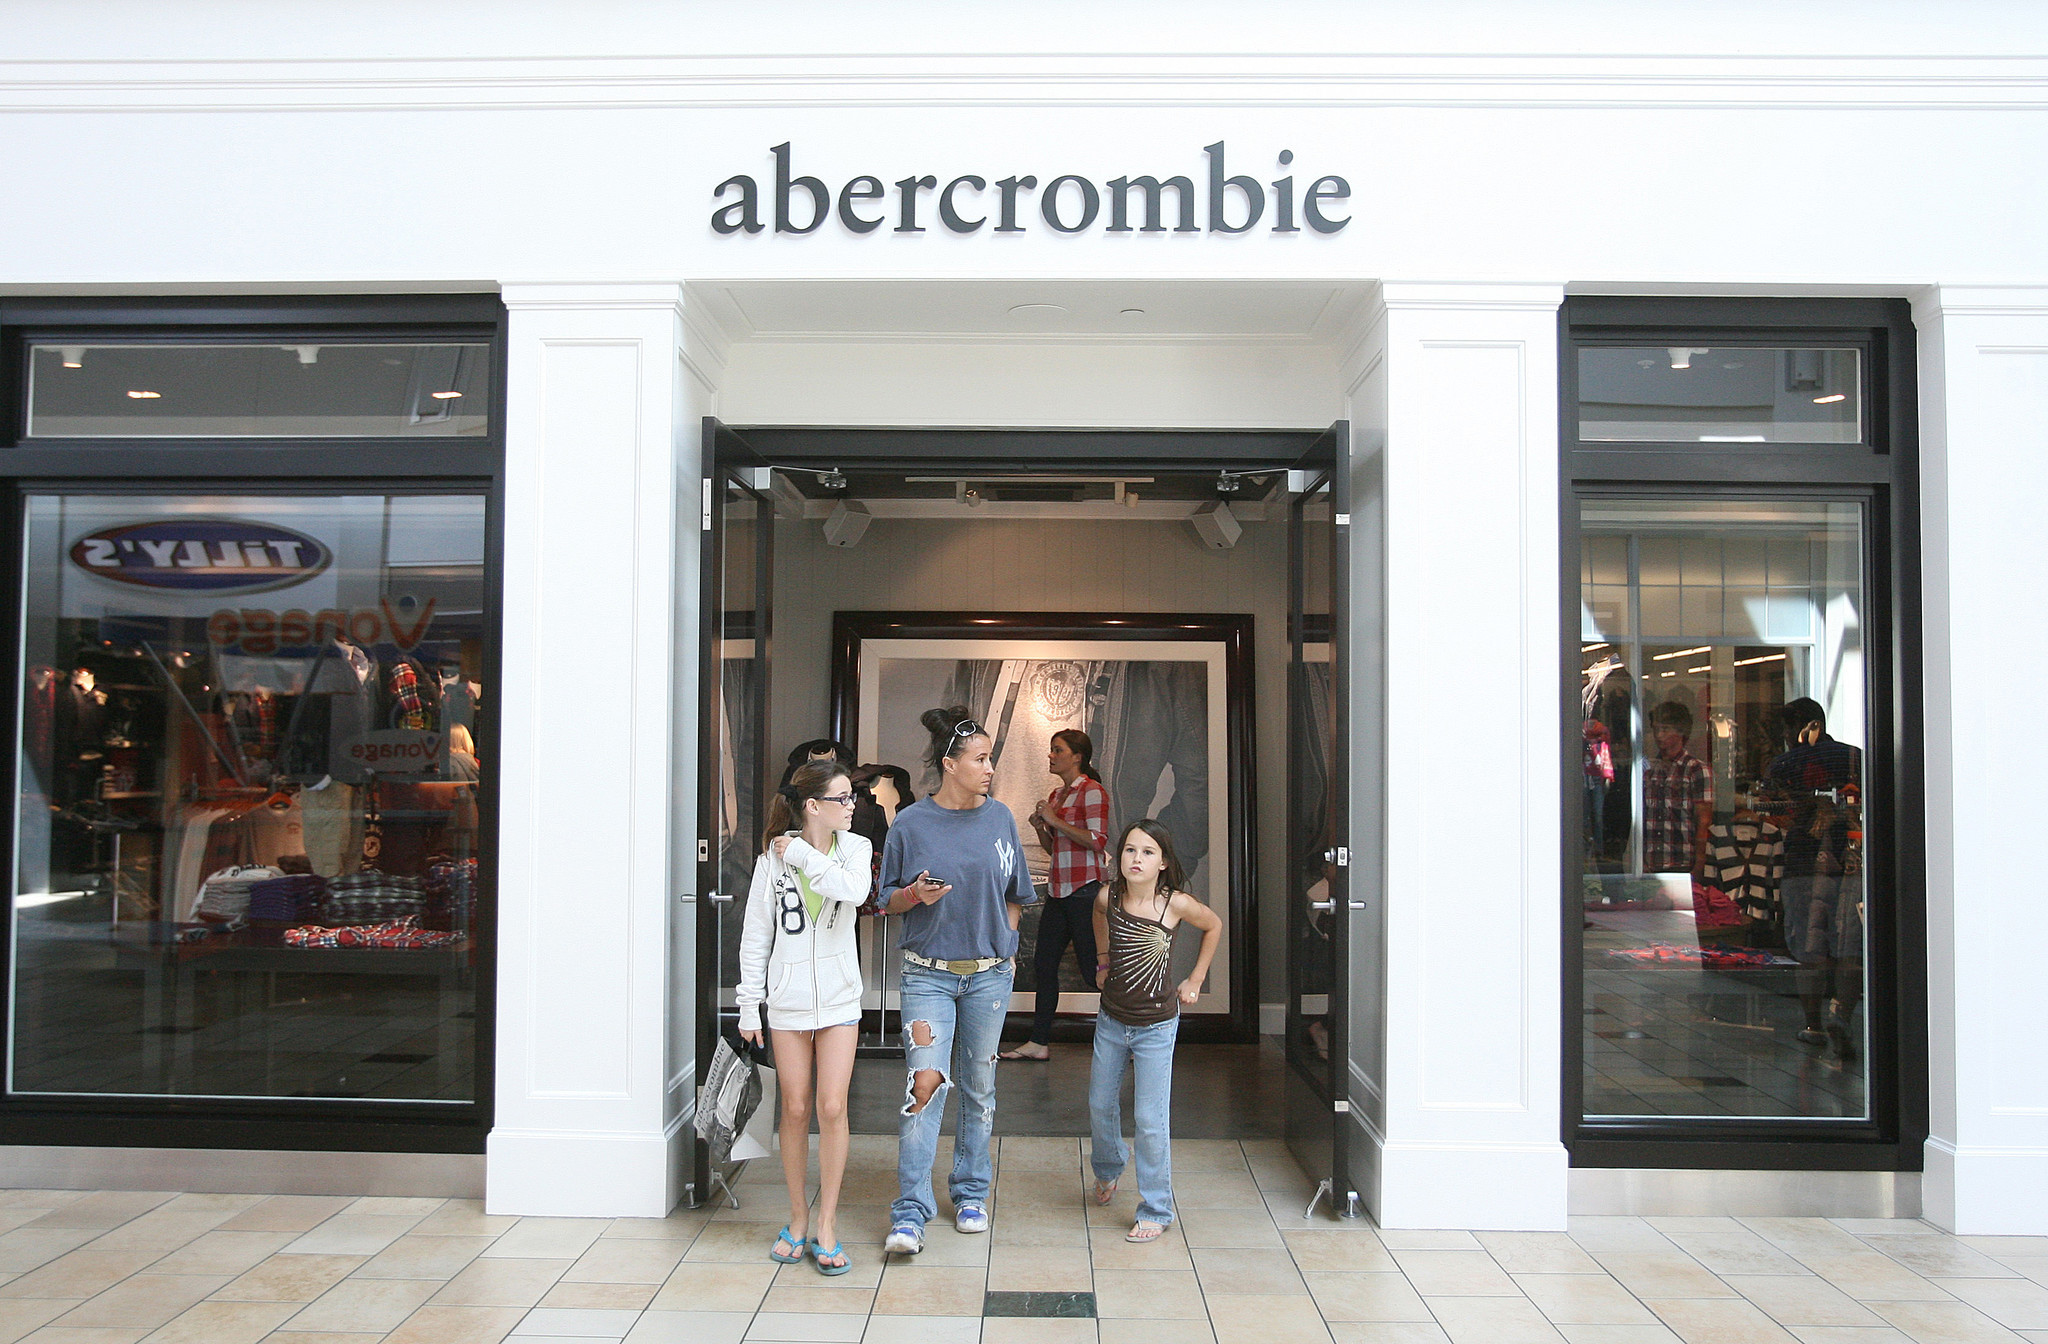 Abercrombie & Fitch can't get grown-ups into the kids